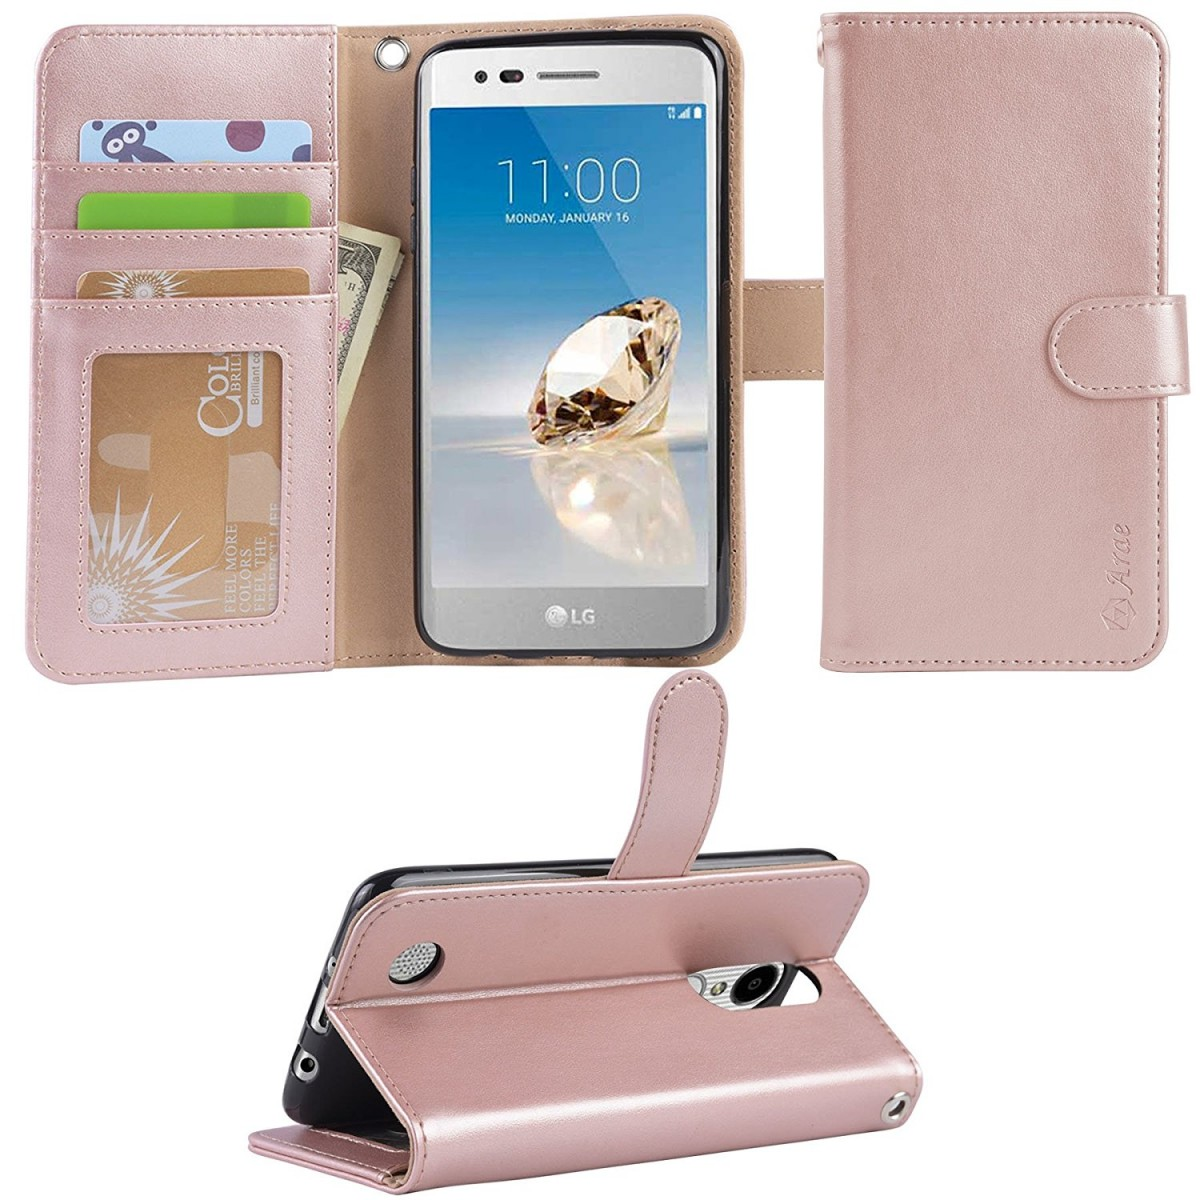 LG Aristo Case, LG Phoenix 3 Case, LG K8 2017 Case, LG Fortune Case, Arae  LG Aristo wallet Case with Kickstand and Flip cover , Rosegold